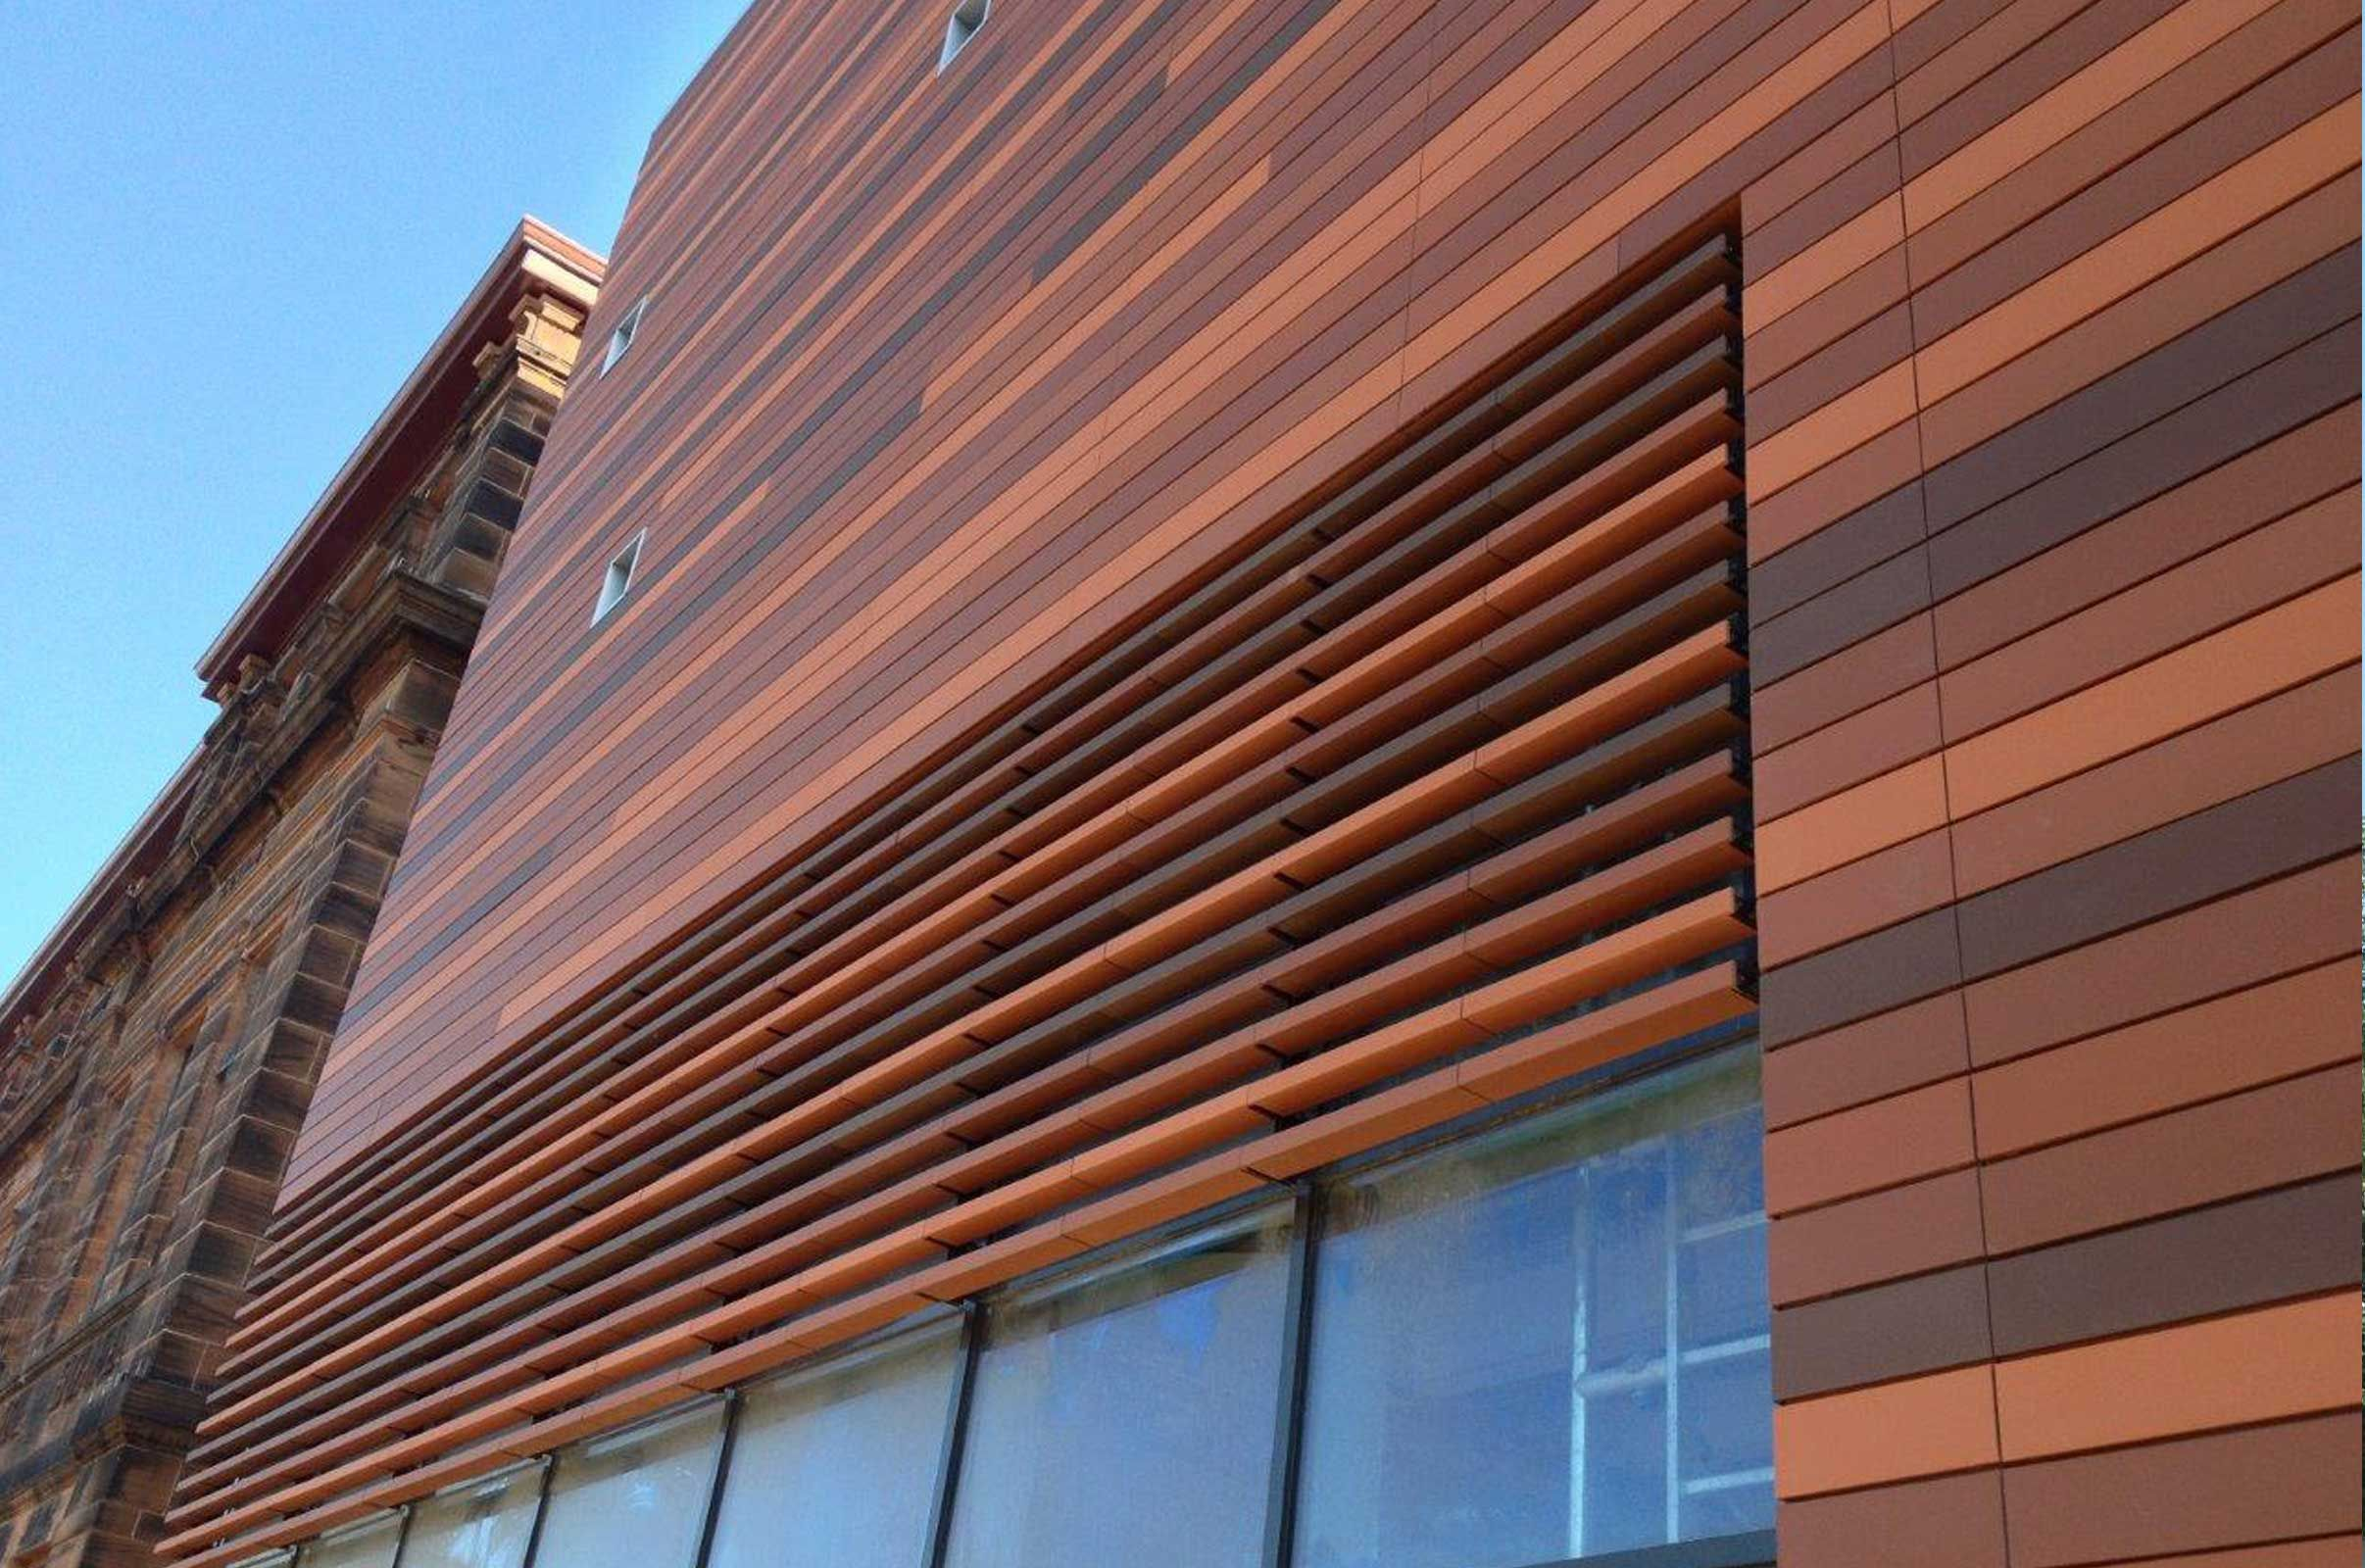 Terra cotta rainscreen google search terra cotta pinterest facade facade architecture for Sustainable exterior cladding materials